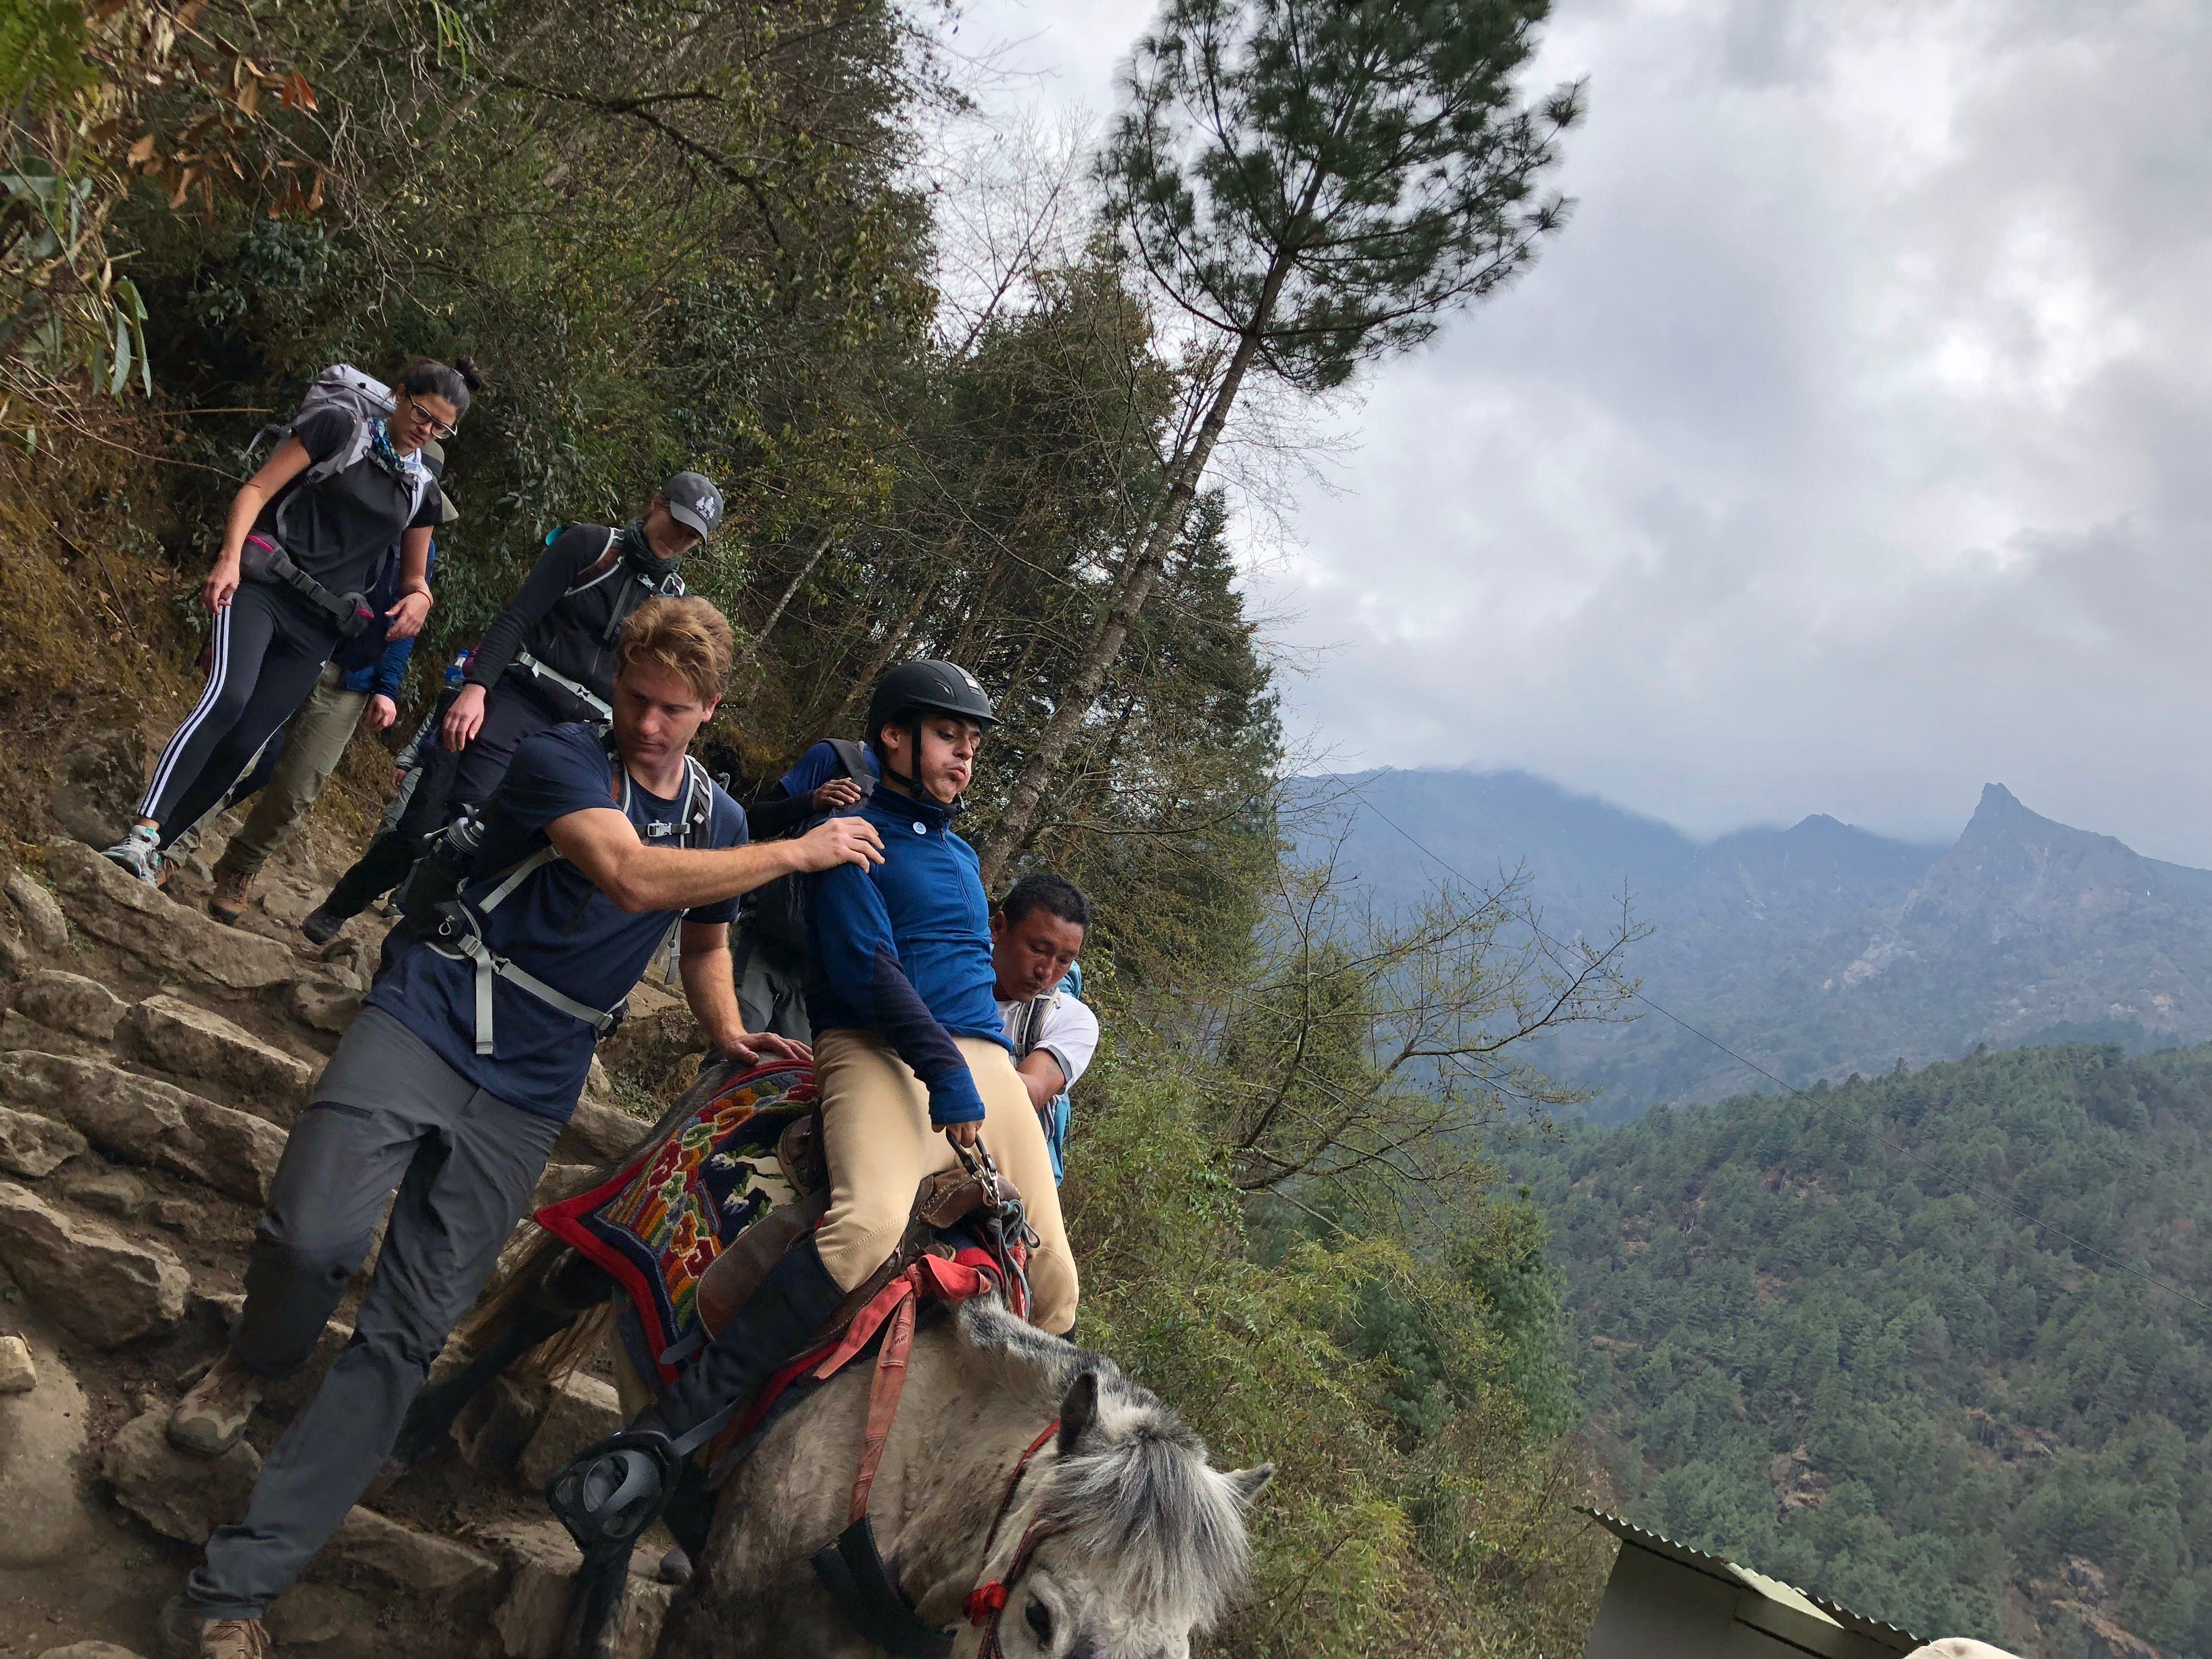 Max Stainton was the first person with cerebral palsy to trek to Everest base camp on horseback